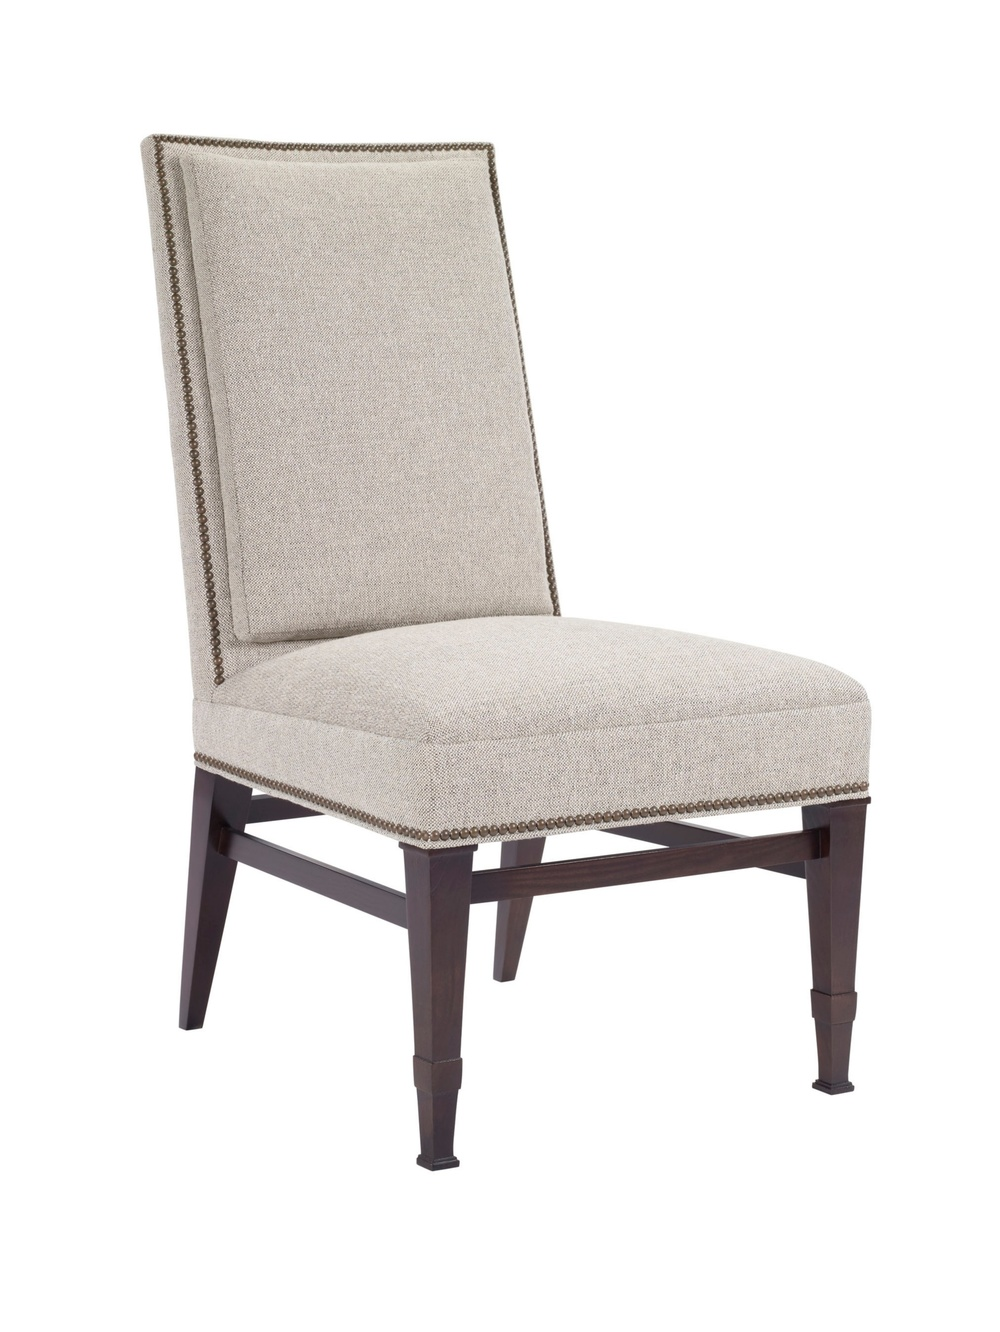 Hickory Chair - Atelier Side Chair